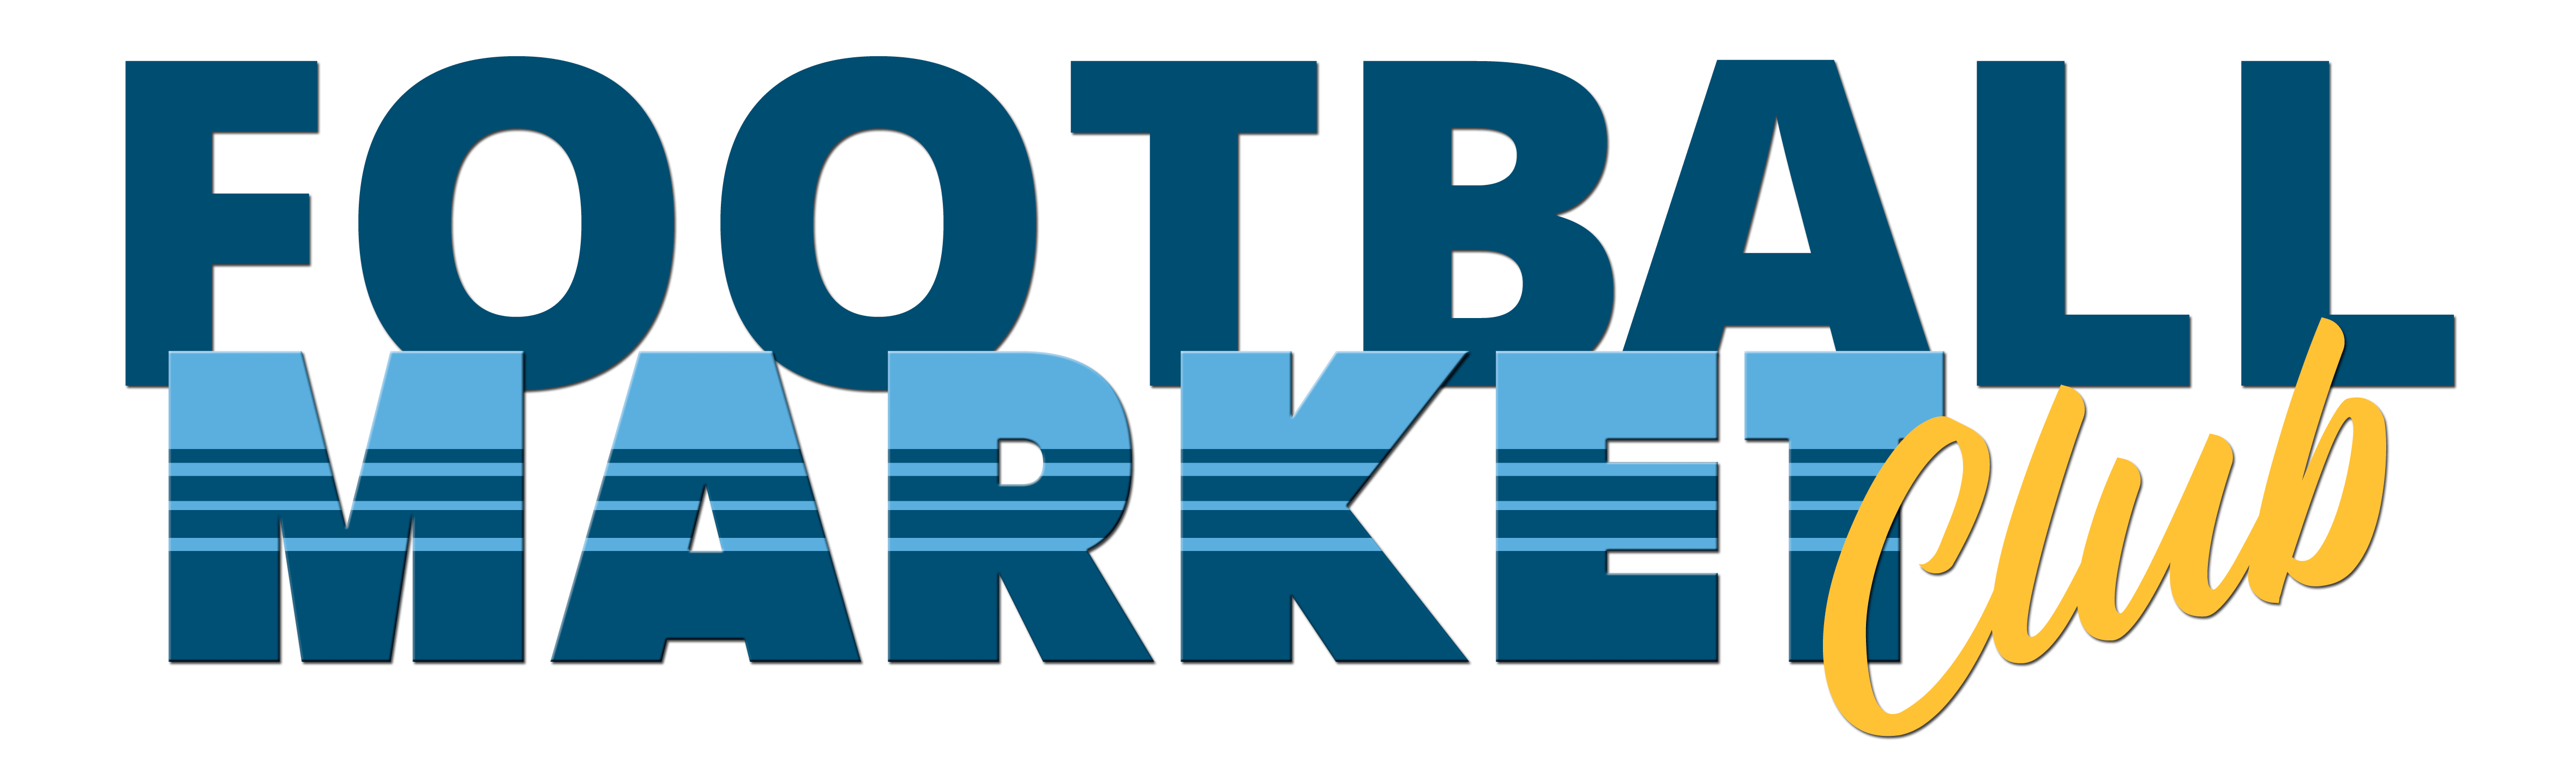 FootballMarket.club logo